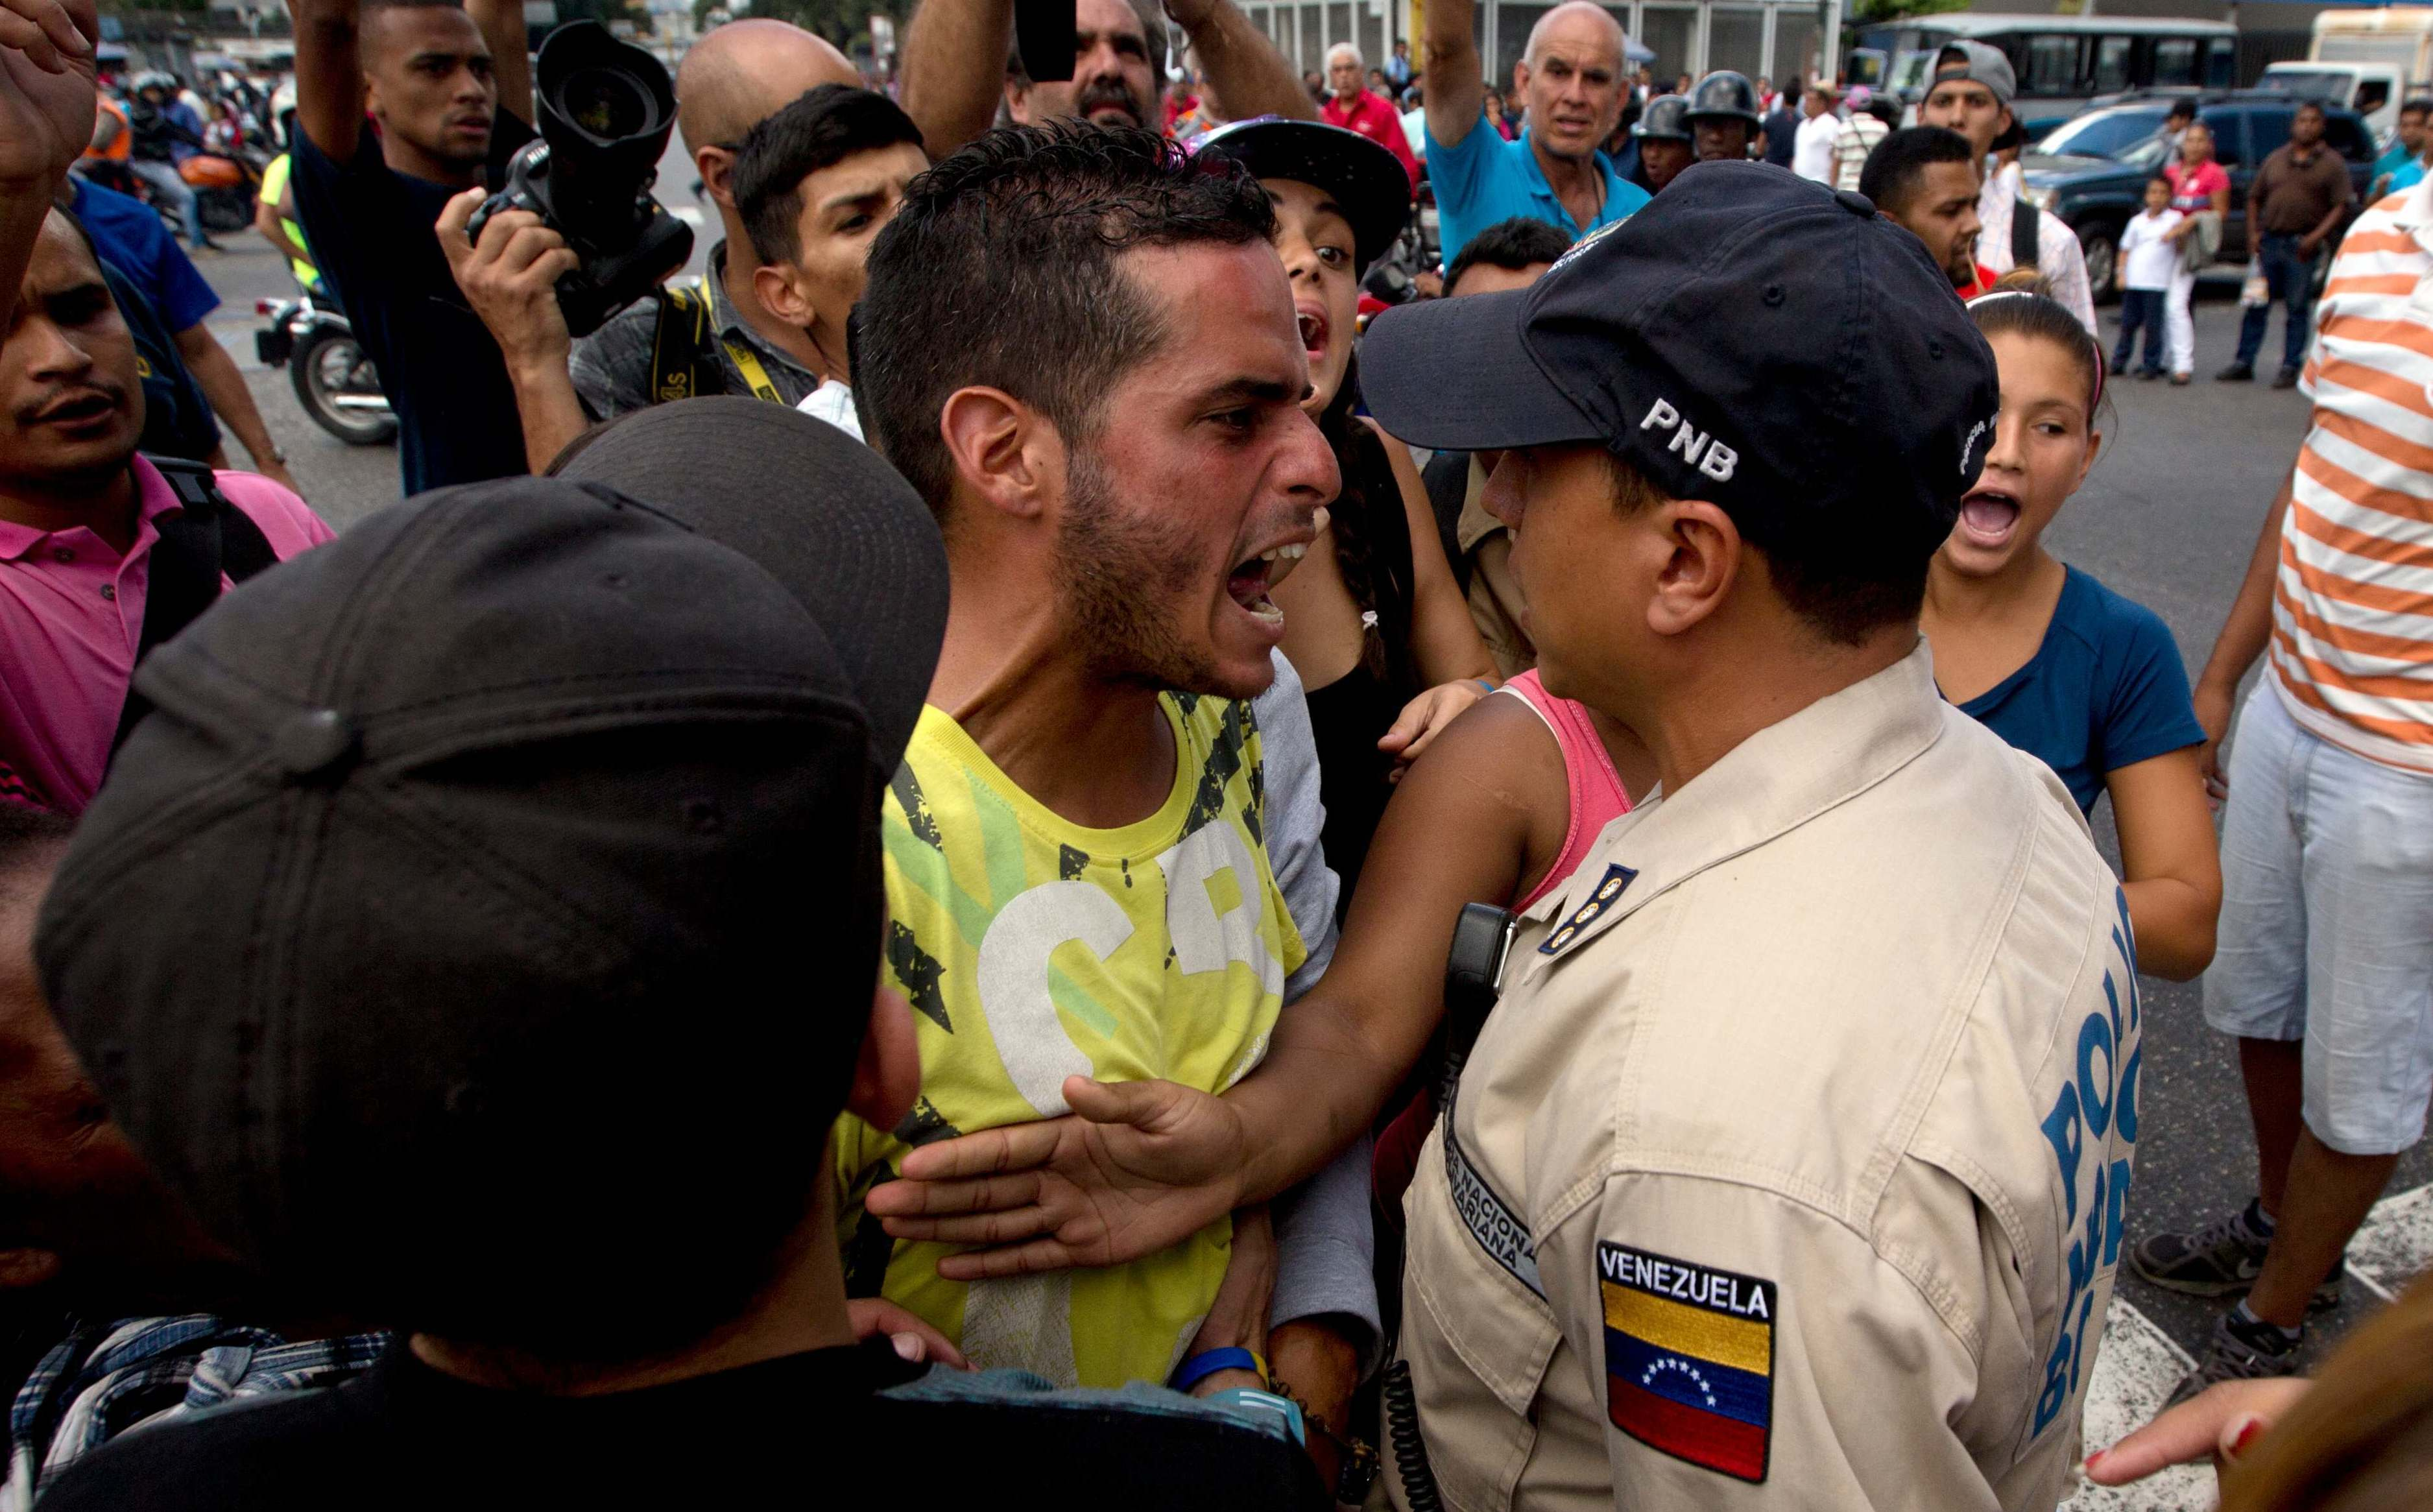 An angry man outside a grocery store argues with a policeman in Caracus, Venezuela, on June 8 amid the country's ongoing food shortages. After waiting for hours, customers began protesting, an increasingly common occurence in Venezuela, which is suffering a severe economic crisis. Fernando Llano/AP